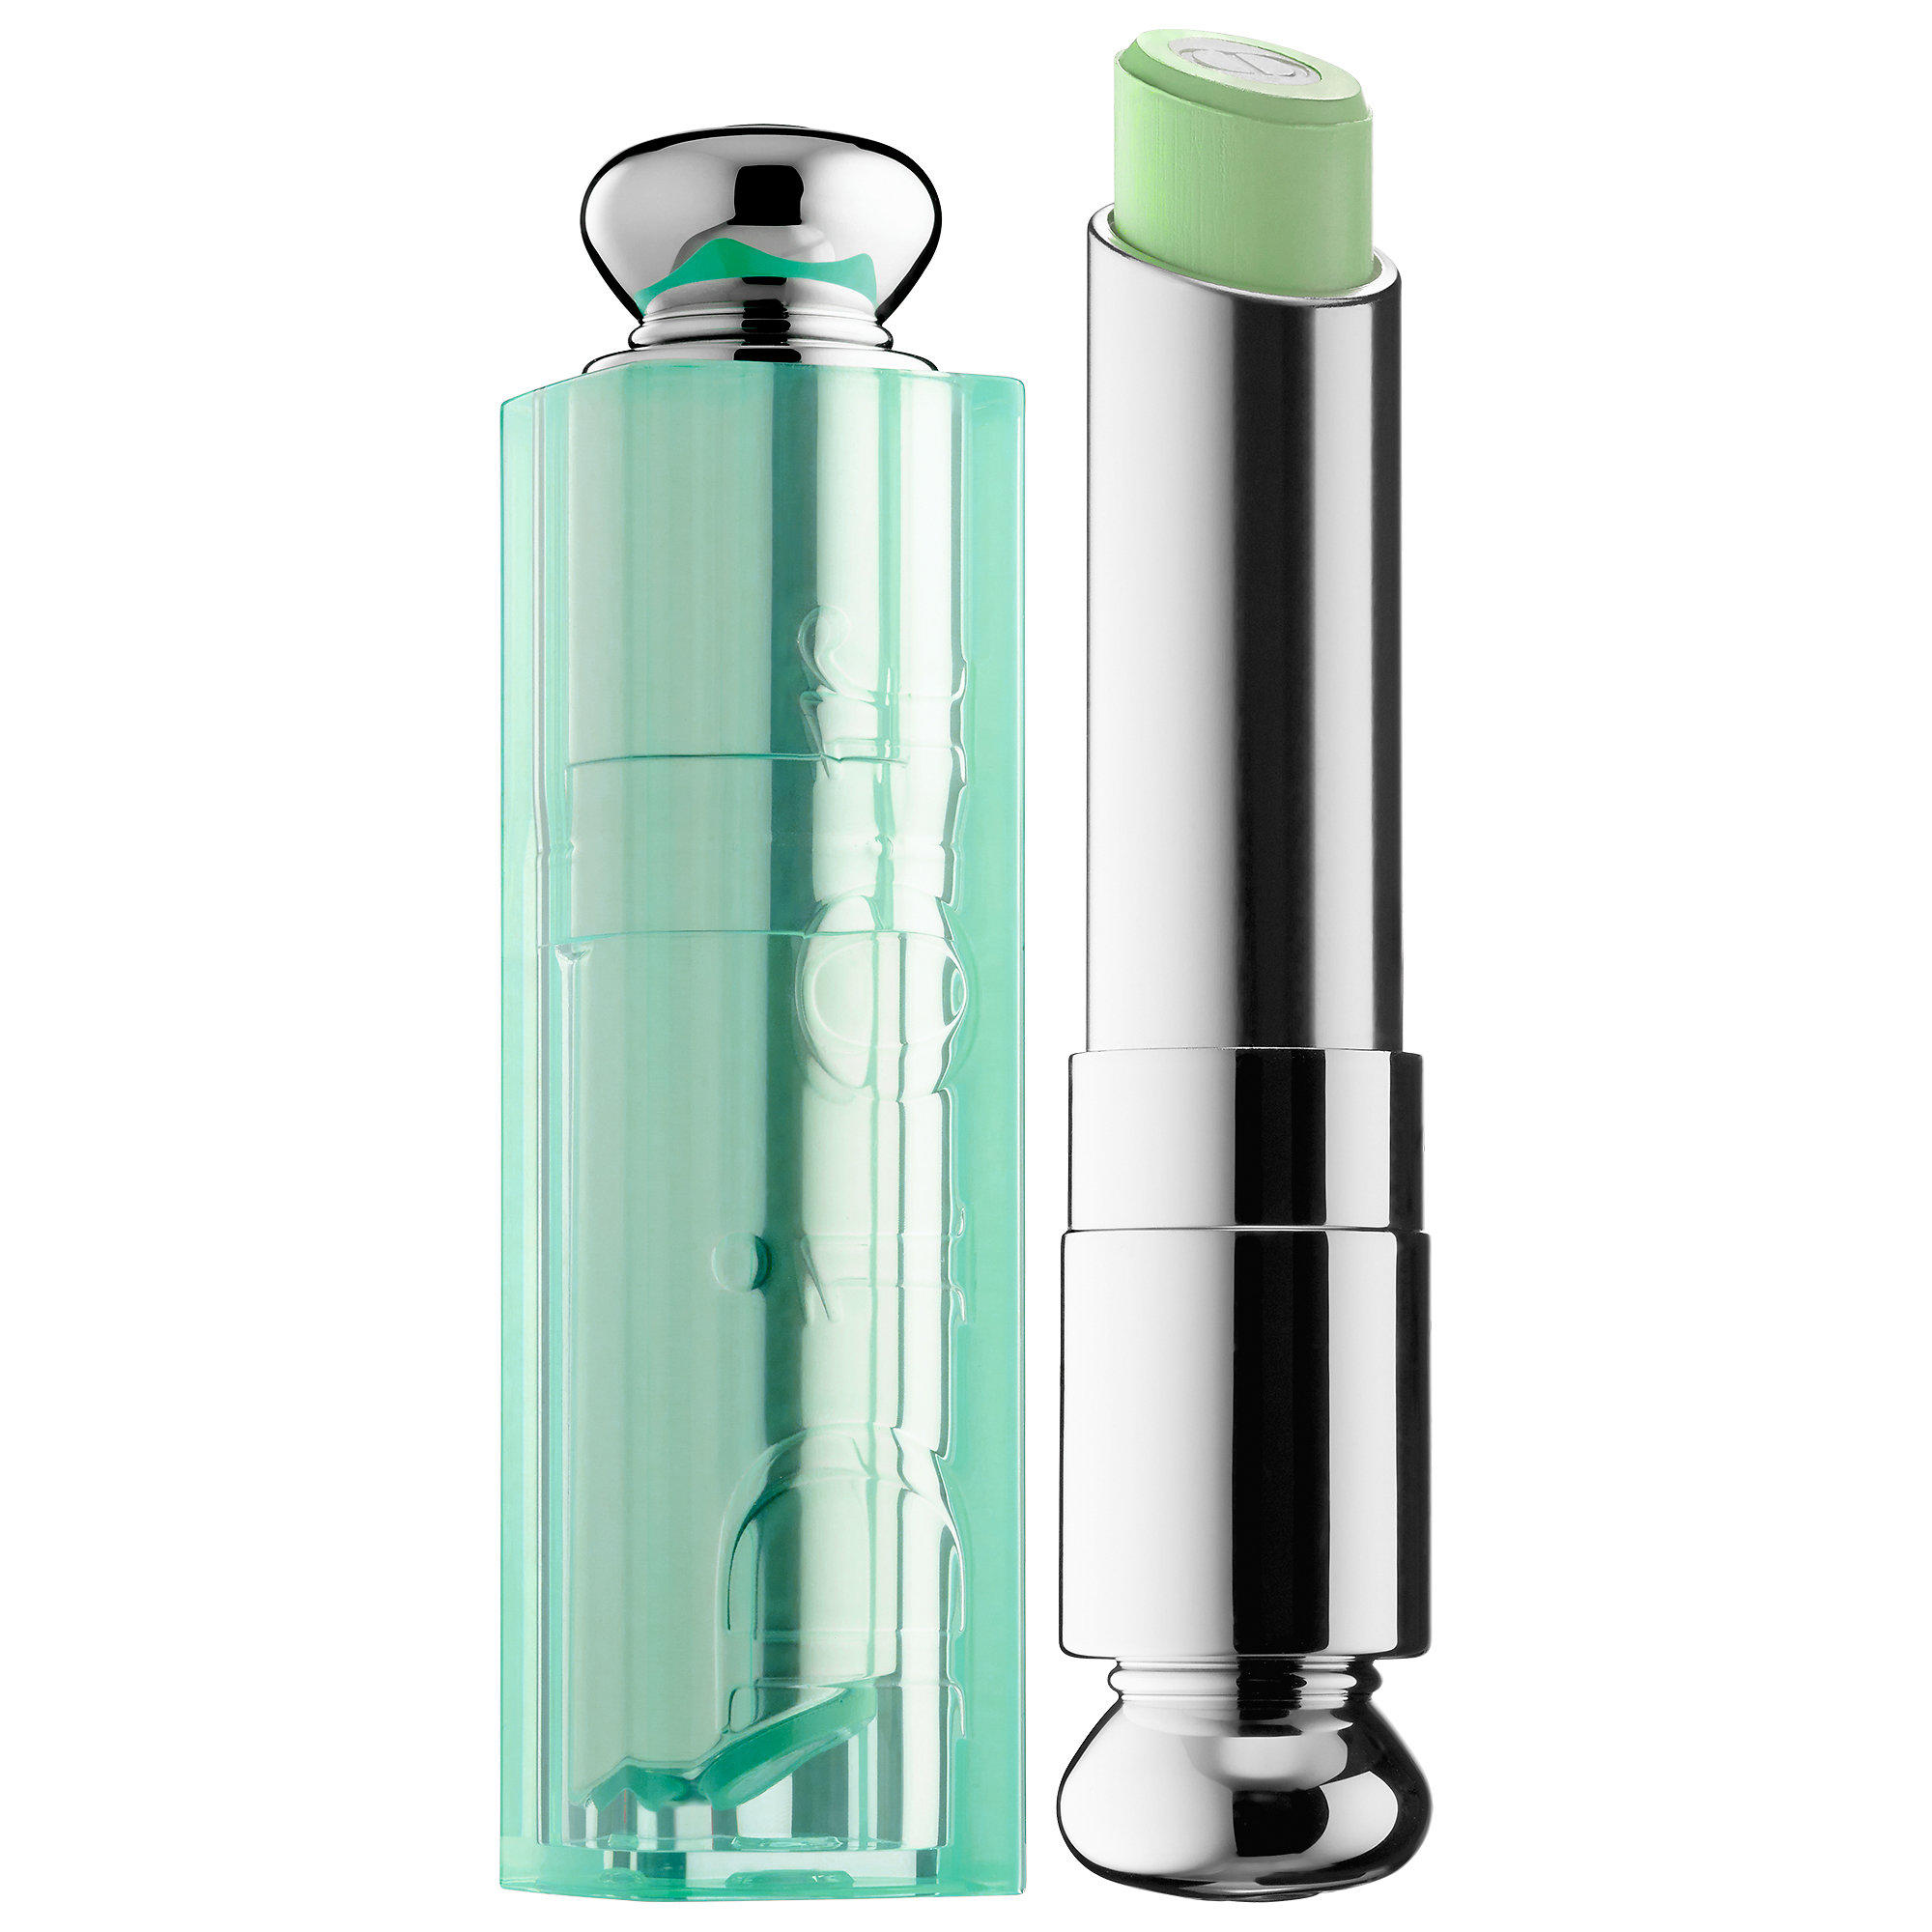 Dior Fix It 2-In-1 Prime & Colour Correct Green 400